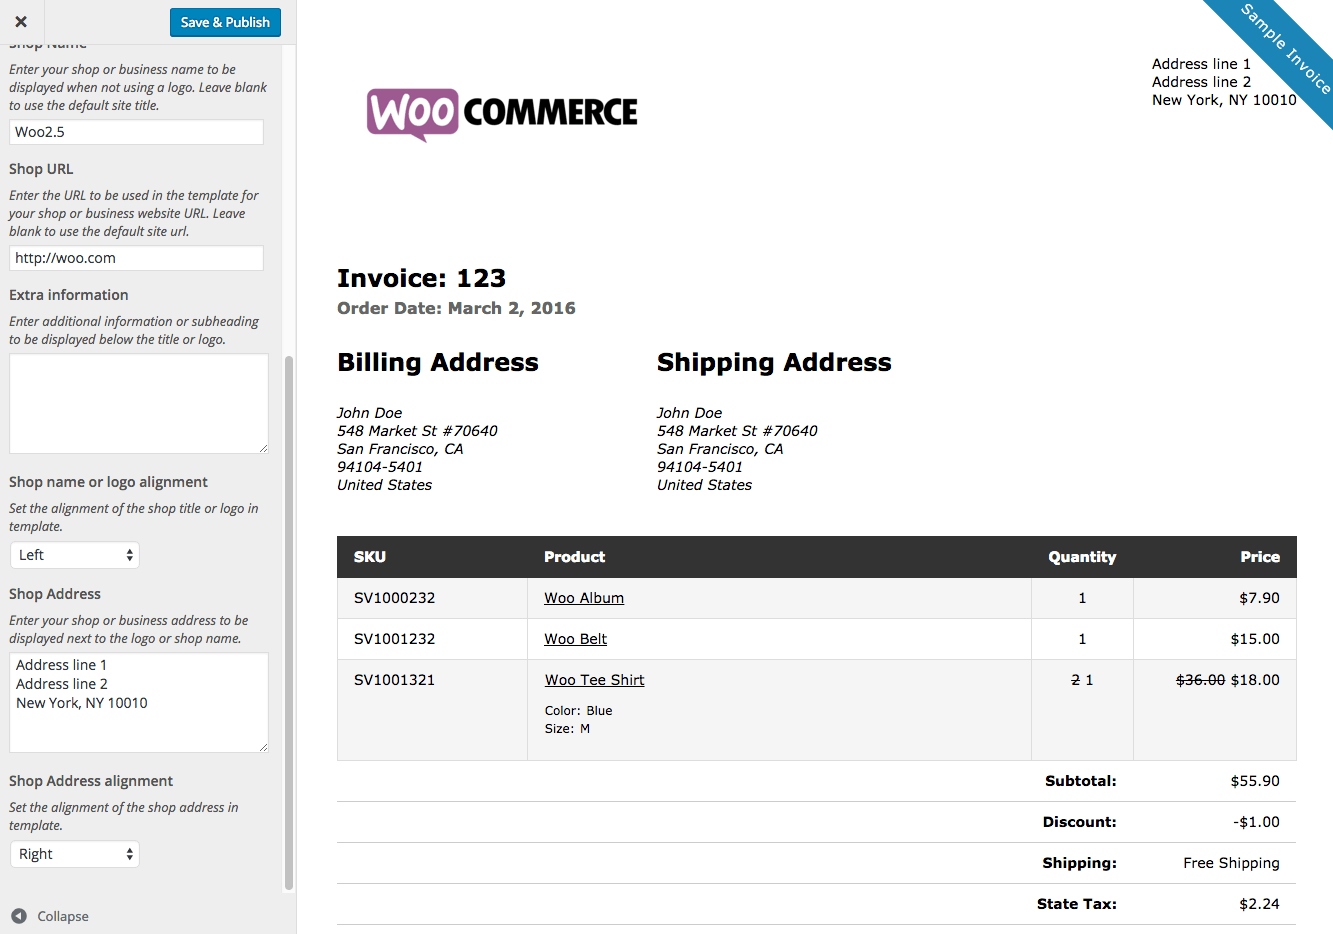 Usdgus  Mesmerizing Print Invoices Amp Packing Lists  Woocommerce With Entrancing Woocommerce Print Invoices  Packing Lists Customizer With Alluring Downloadable Invoice Templates Also Rental Invoice Template Free In Addition Simple Invoice Management System And Invoice Template Word  Free Download As Well As Invoice You Additionally Sample Invoice For Freelance Work From Woocommercecom With Usdgus  Entrancing Print Invoices Amp Packing Lists  Woocommerce With Alluring Woocommerce Print Invoices  Packing Lists Customizer And Mesmerizing Downloadable Invoice Templates Also Rental Invoice Template Free In Addition Simple Invoice Management System From Woocommercecom